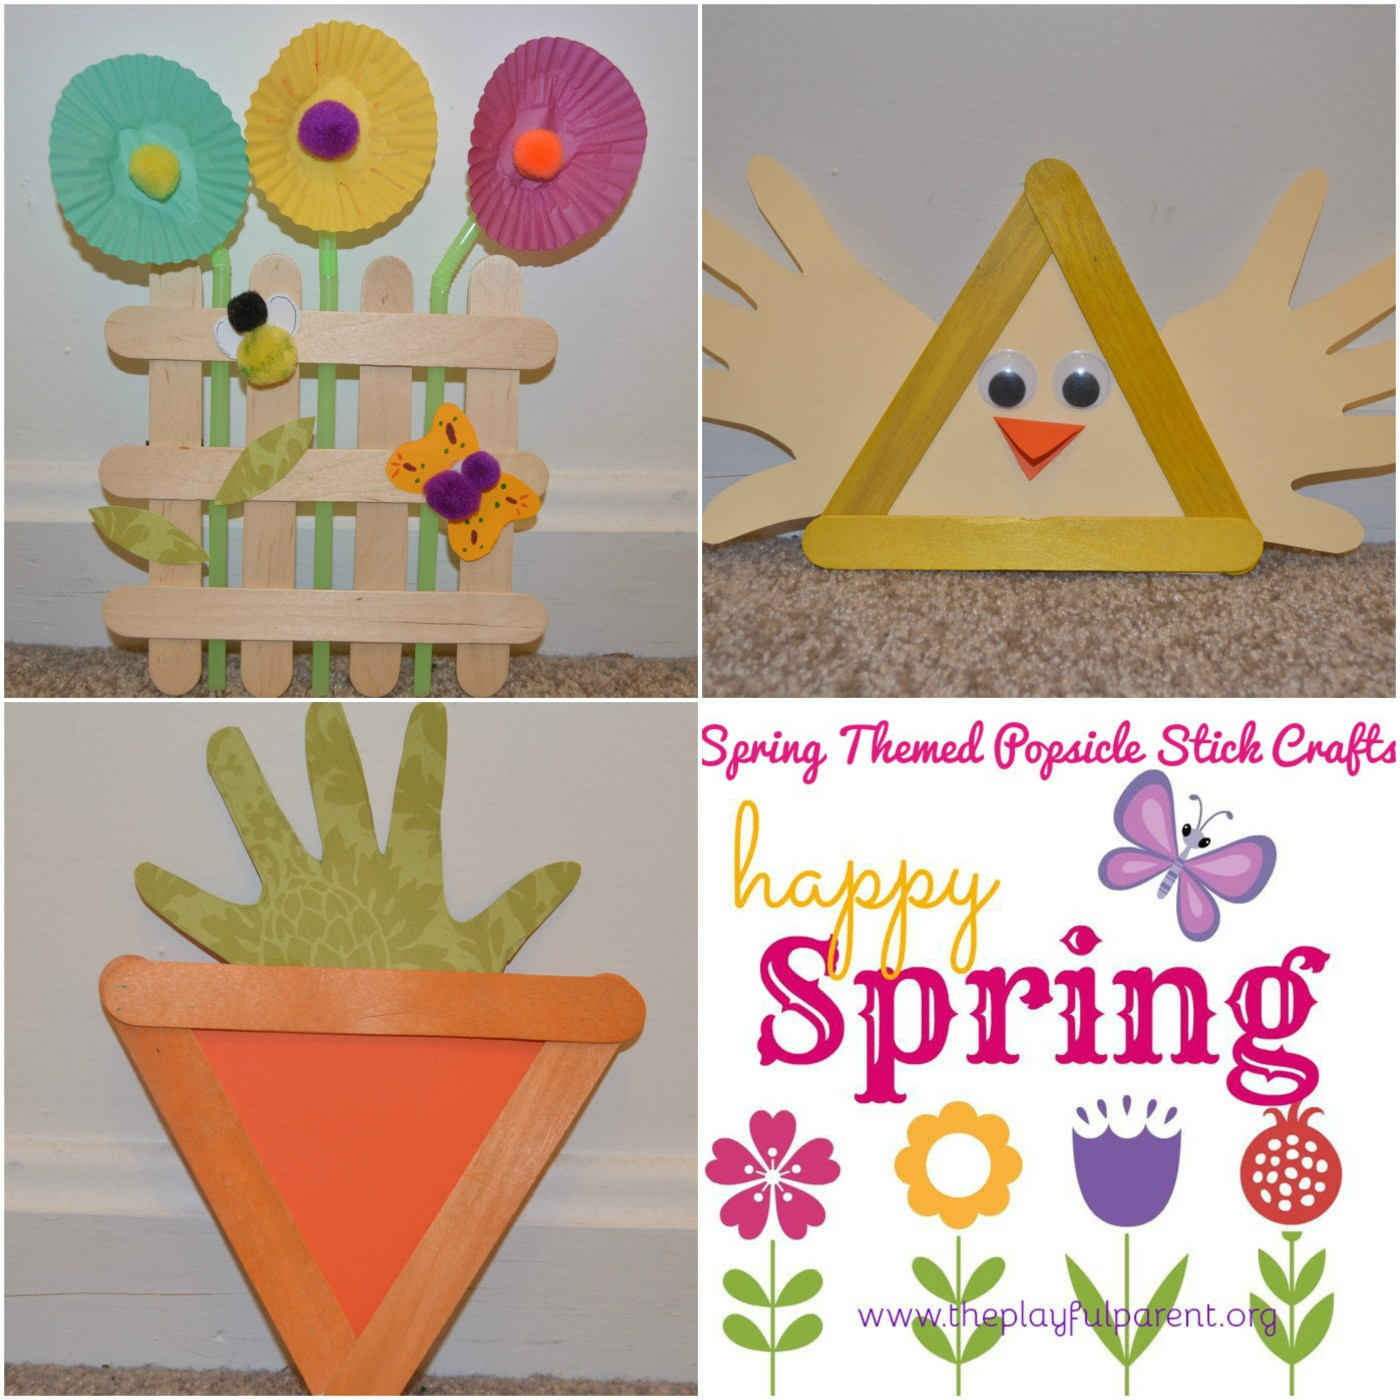 Spring Themed Popsicle Stick Crafts